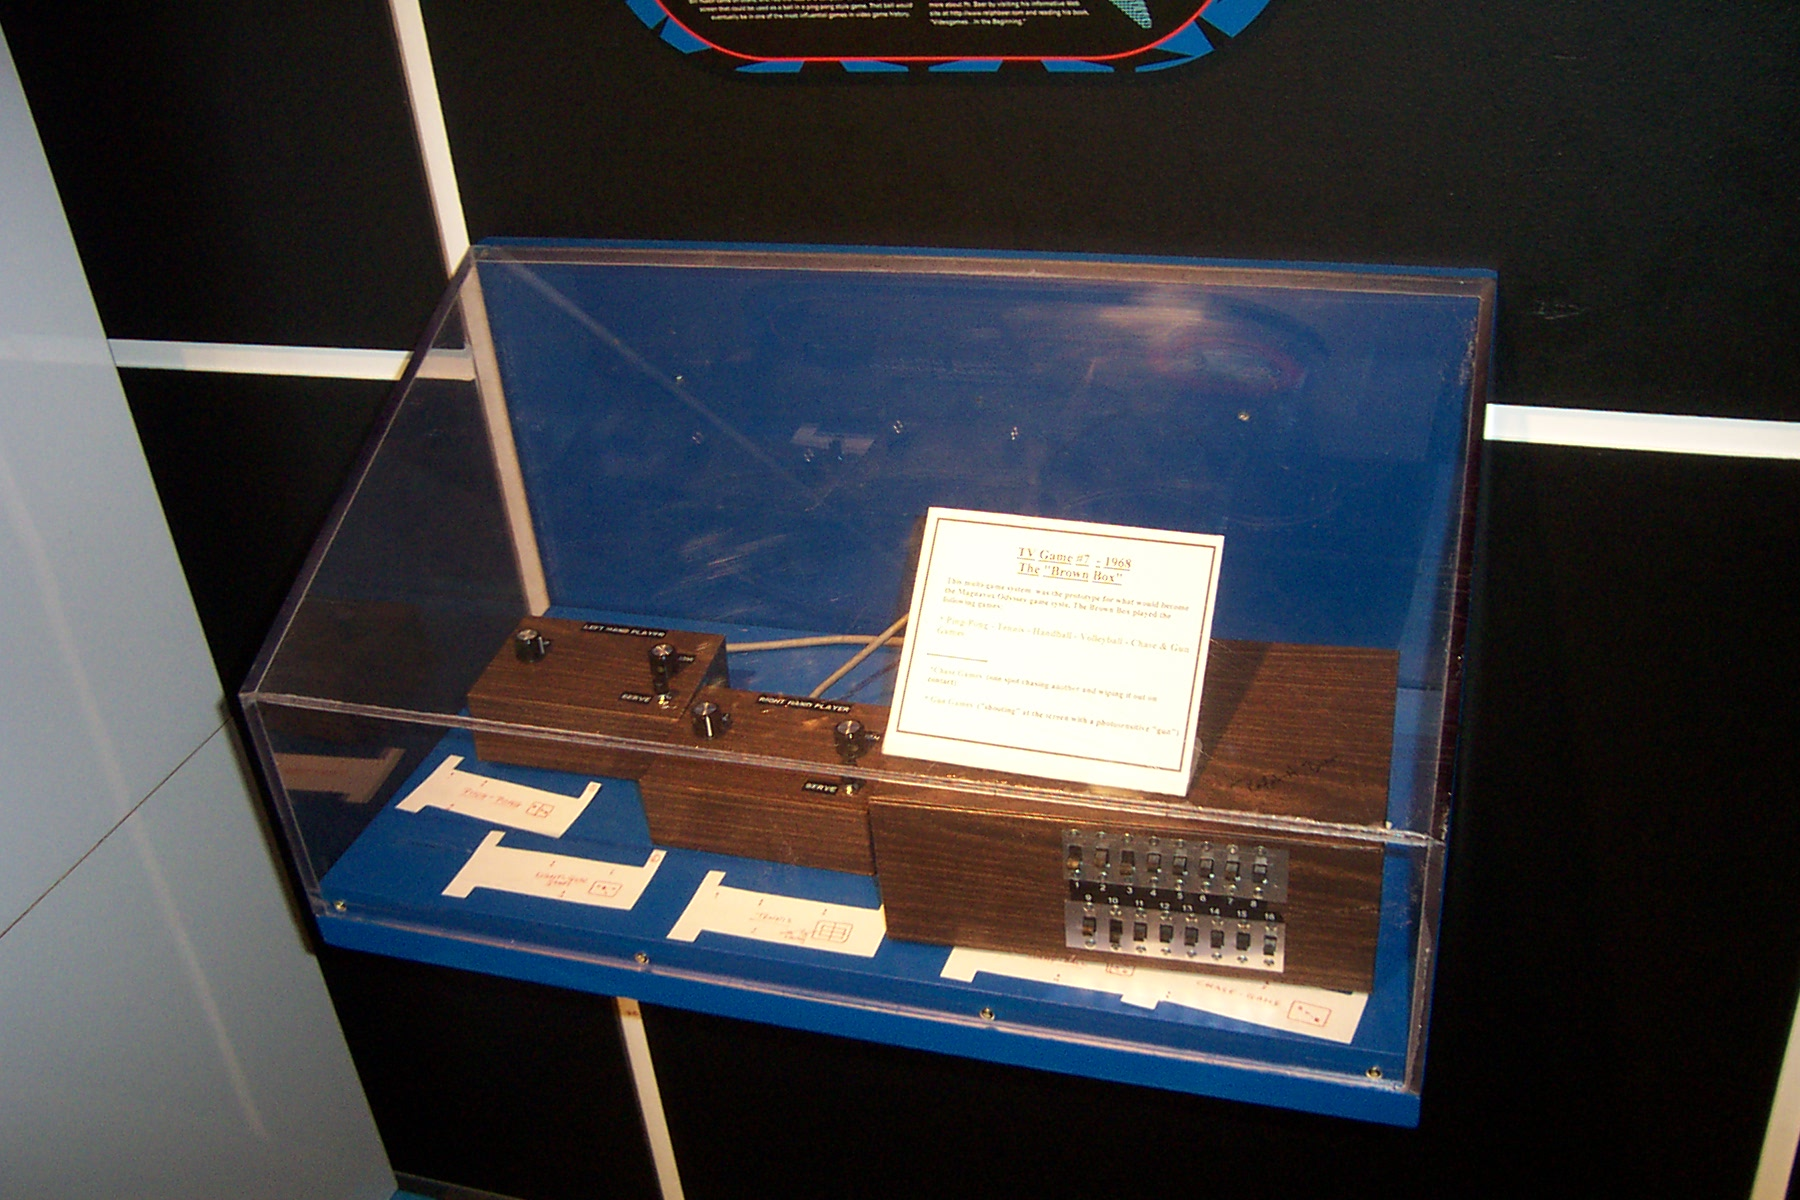 Prototype on display in the smithsonian museum of the magnavox odyssey known as the Brown Box